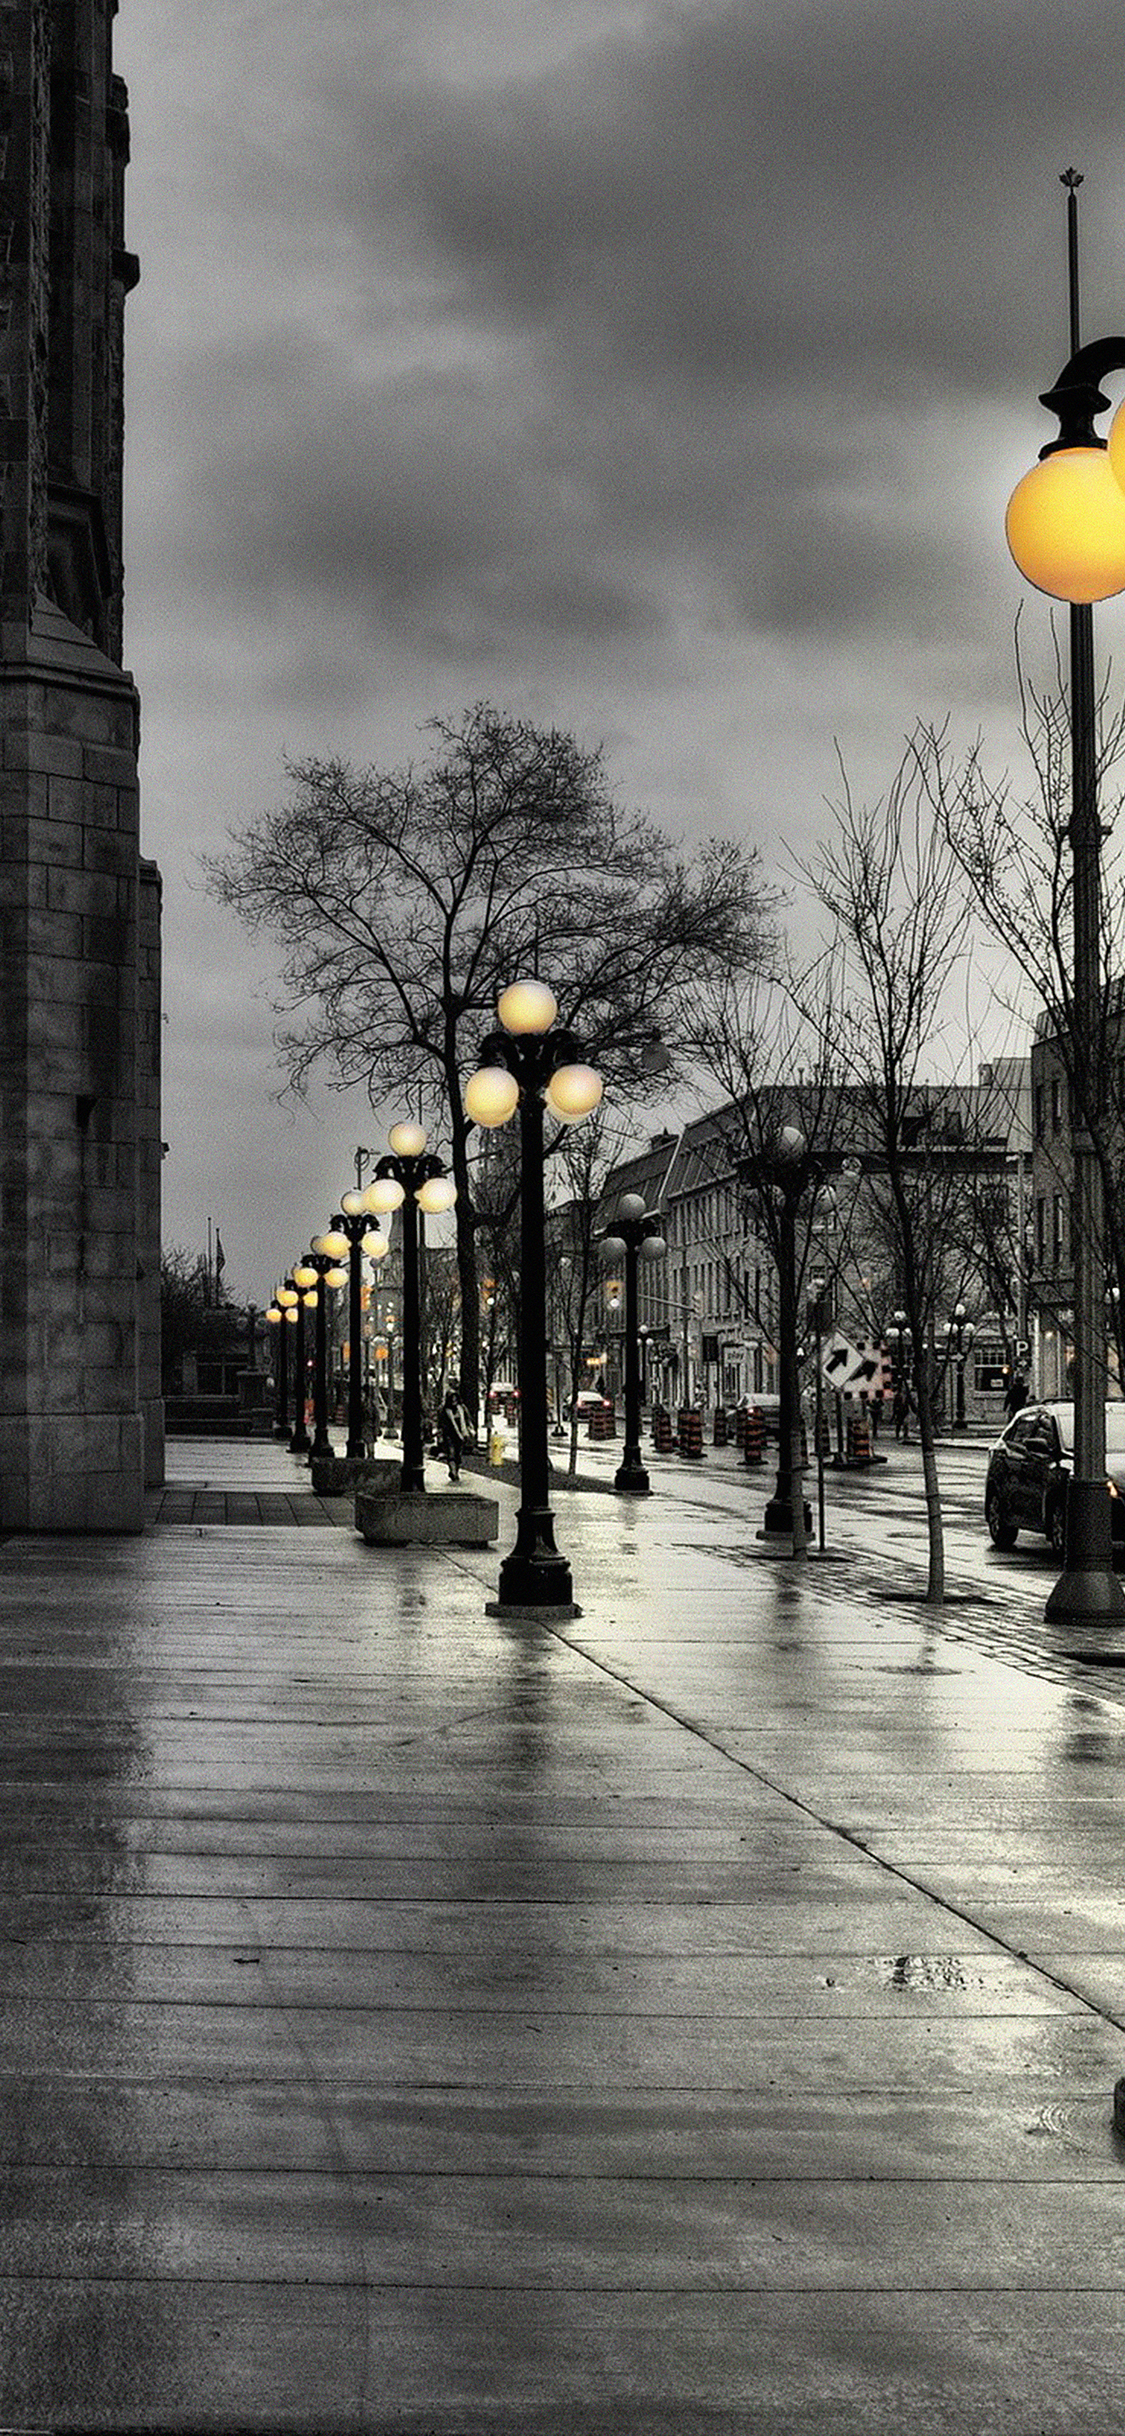 Iphonexpapers Me77 Dark Street With Lamps